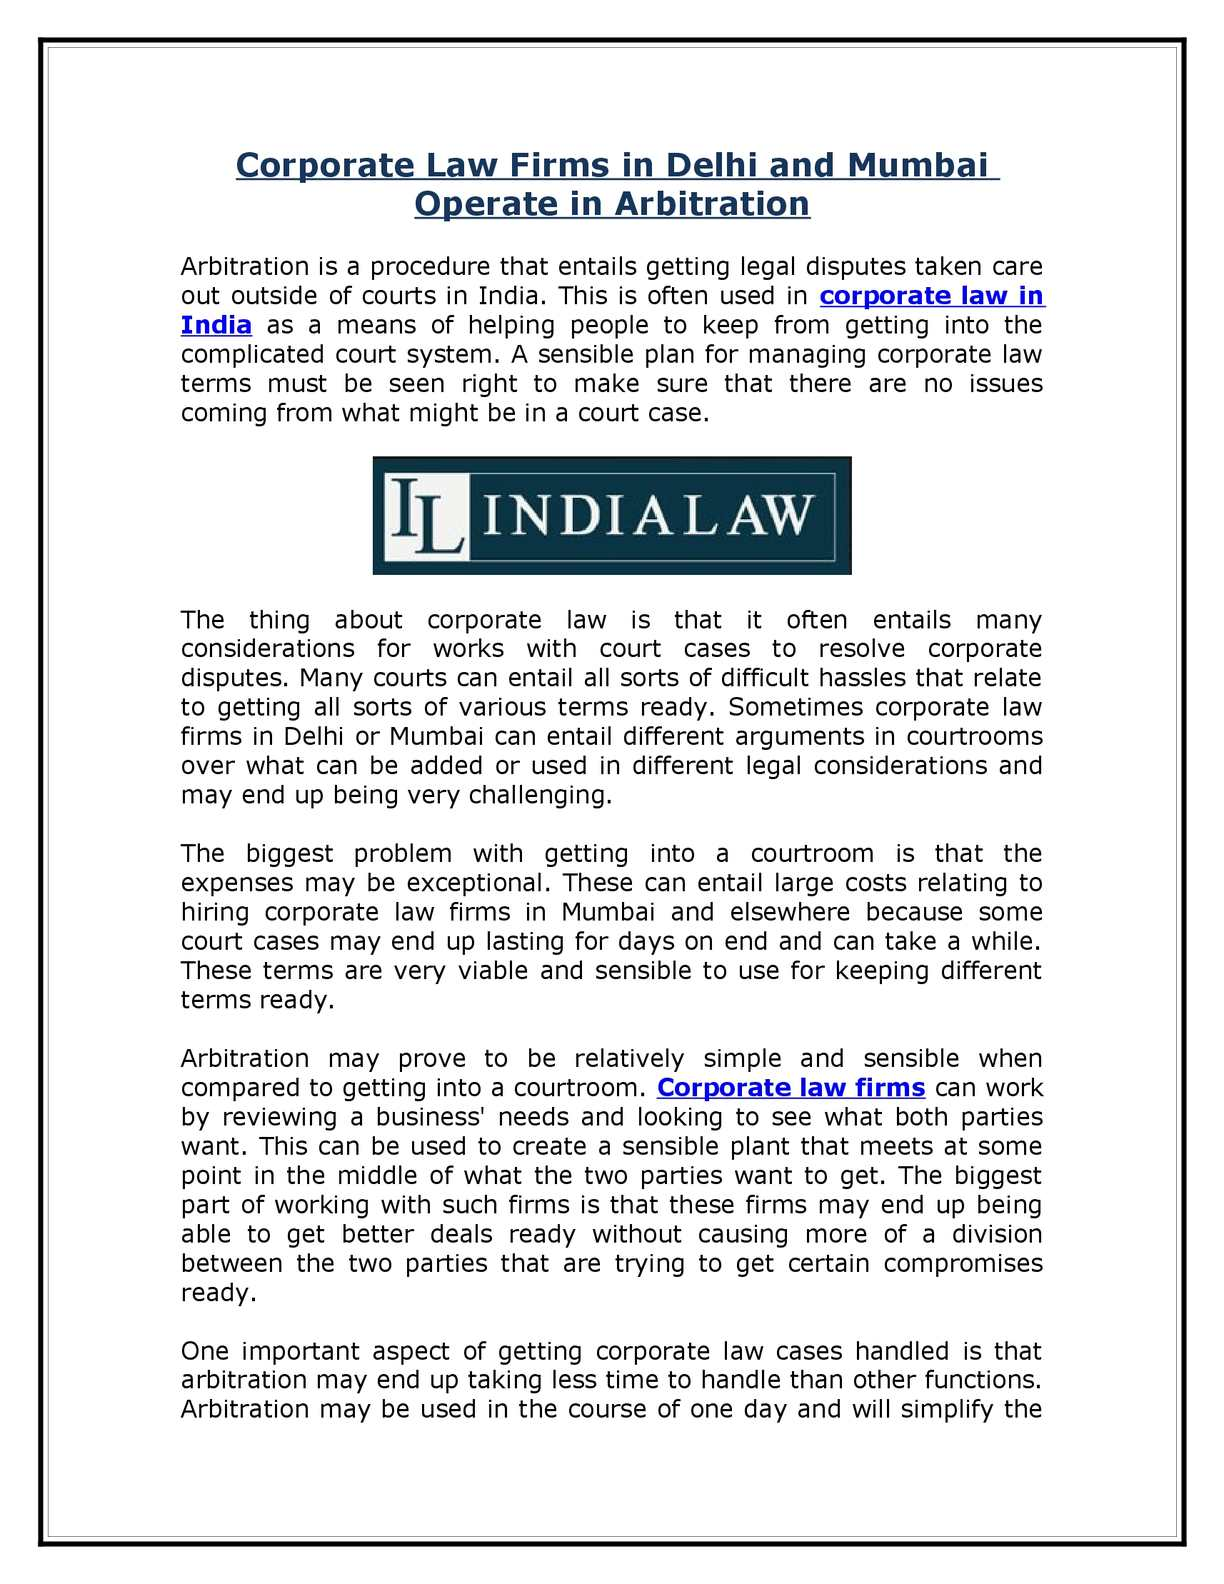 Calaméo - Corporate Law Firms in Delhi and Mumbai Operate in Arbitration